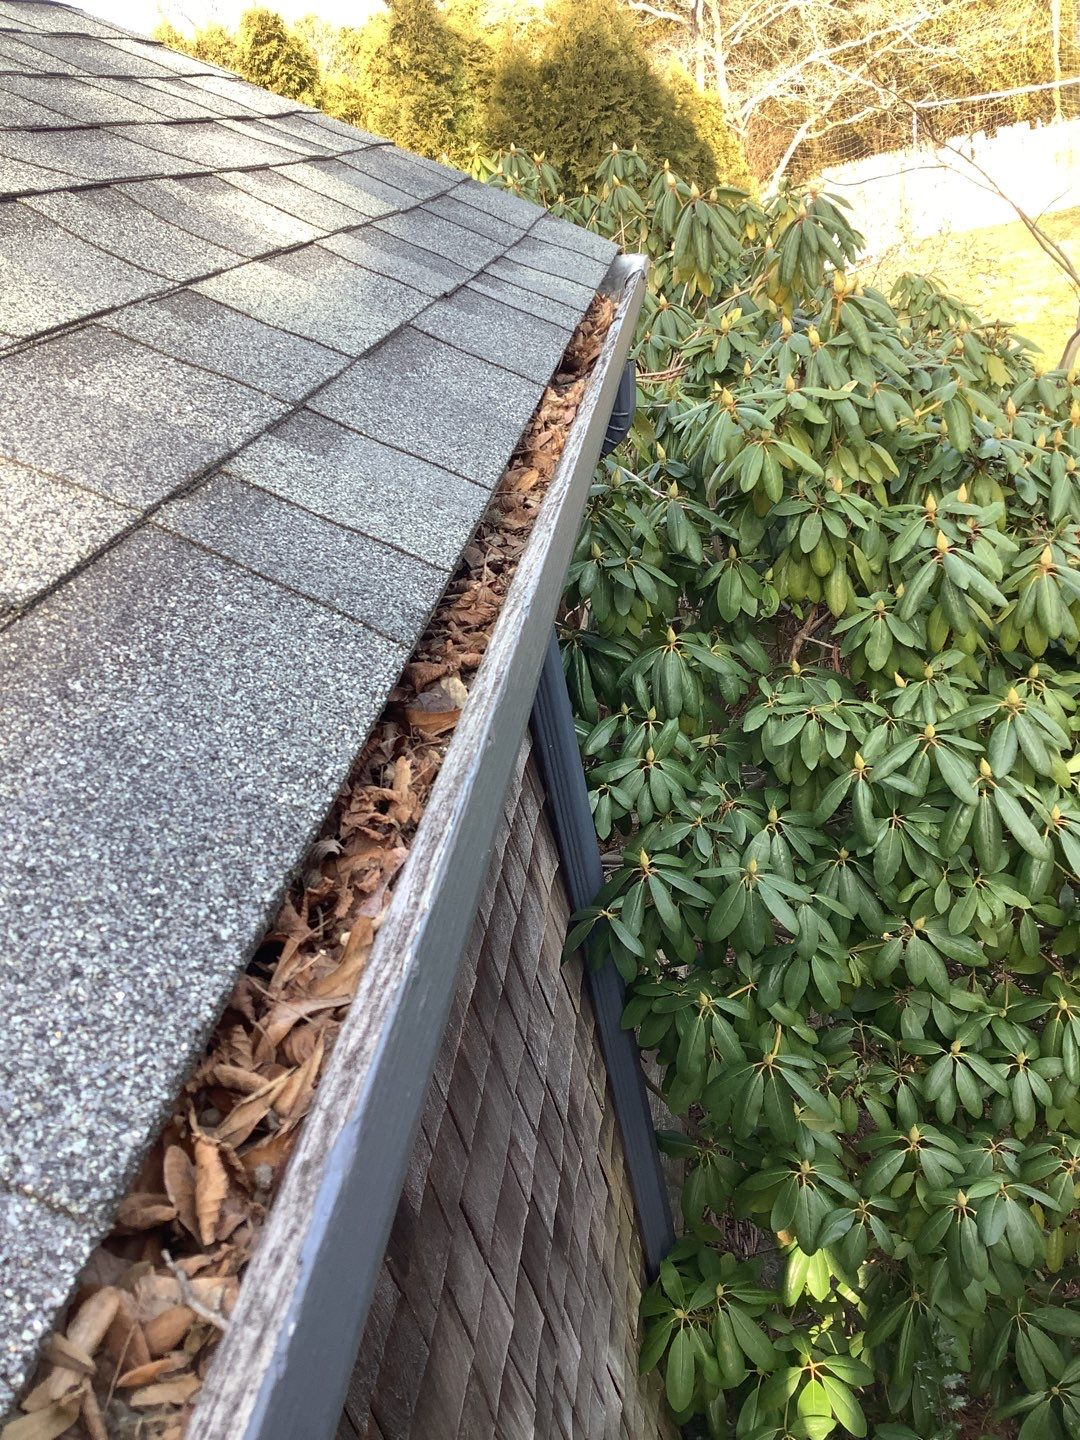 A gutter that needs to be cleaned per the spring home maintenance checklist